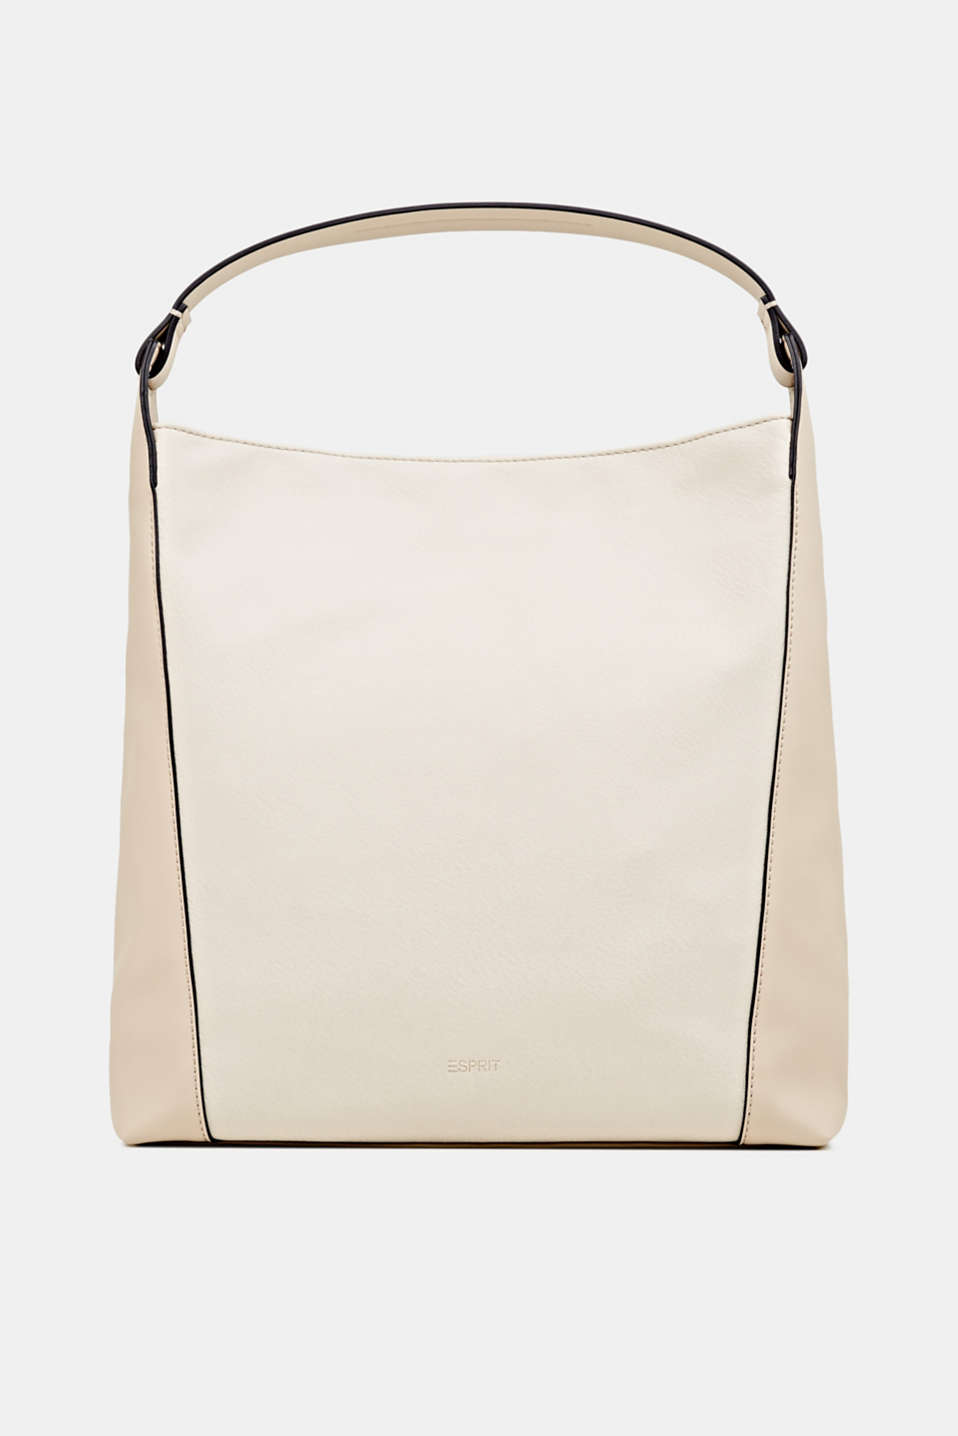 Esprit - Material mix shoulder bag, vegan